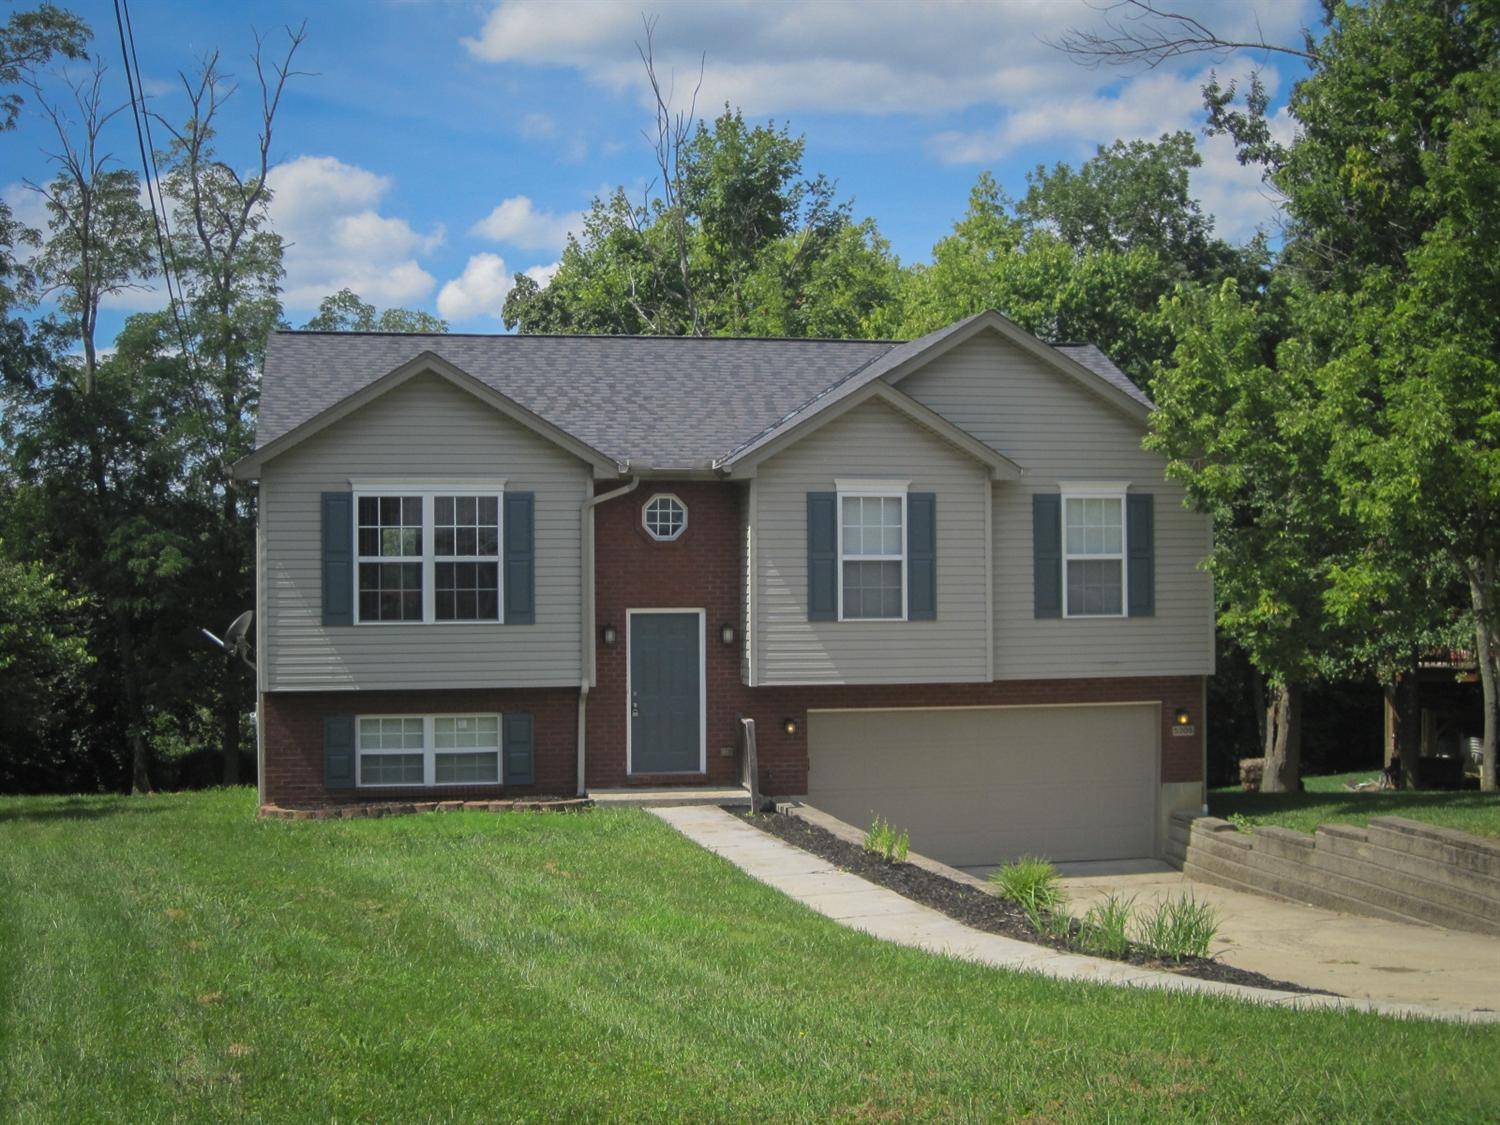 Photo 1 for 5205 Belle Dr Independence, KY 41051